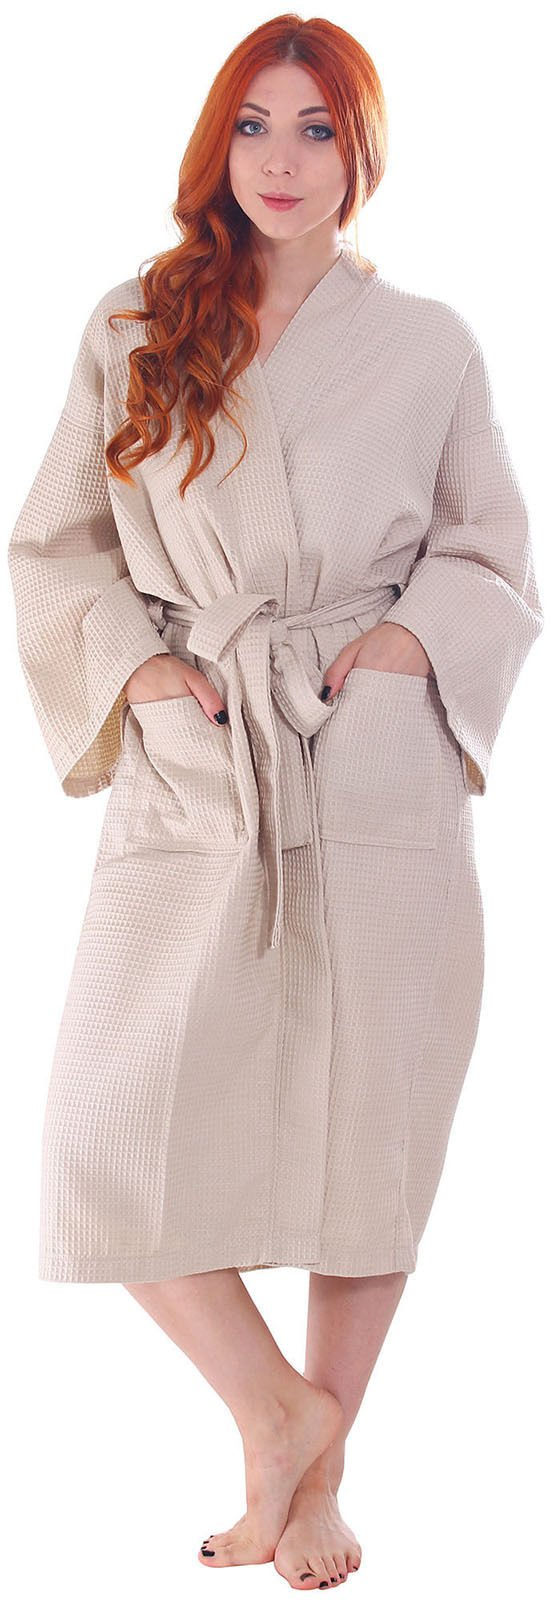 Koni Robe, Micro Denier, Waffle Kimono, Size: Small (with Carrying Bag and Wooden Hanger)